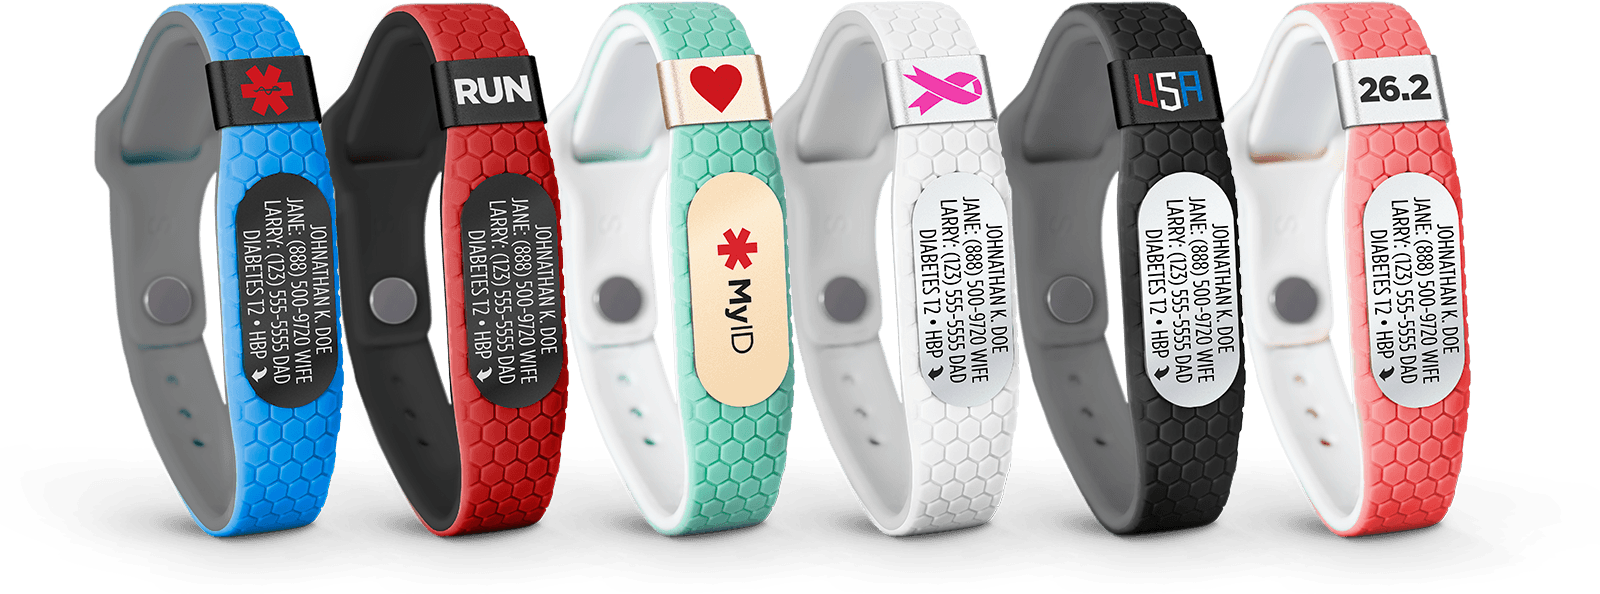 medical id diabetes bracelets customization